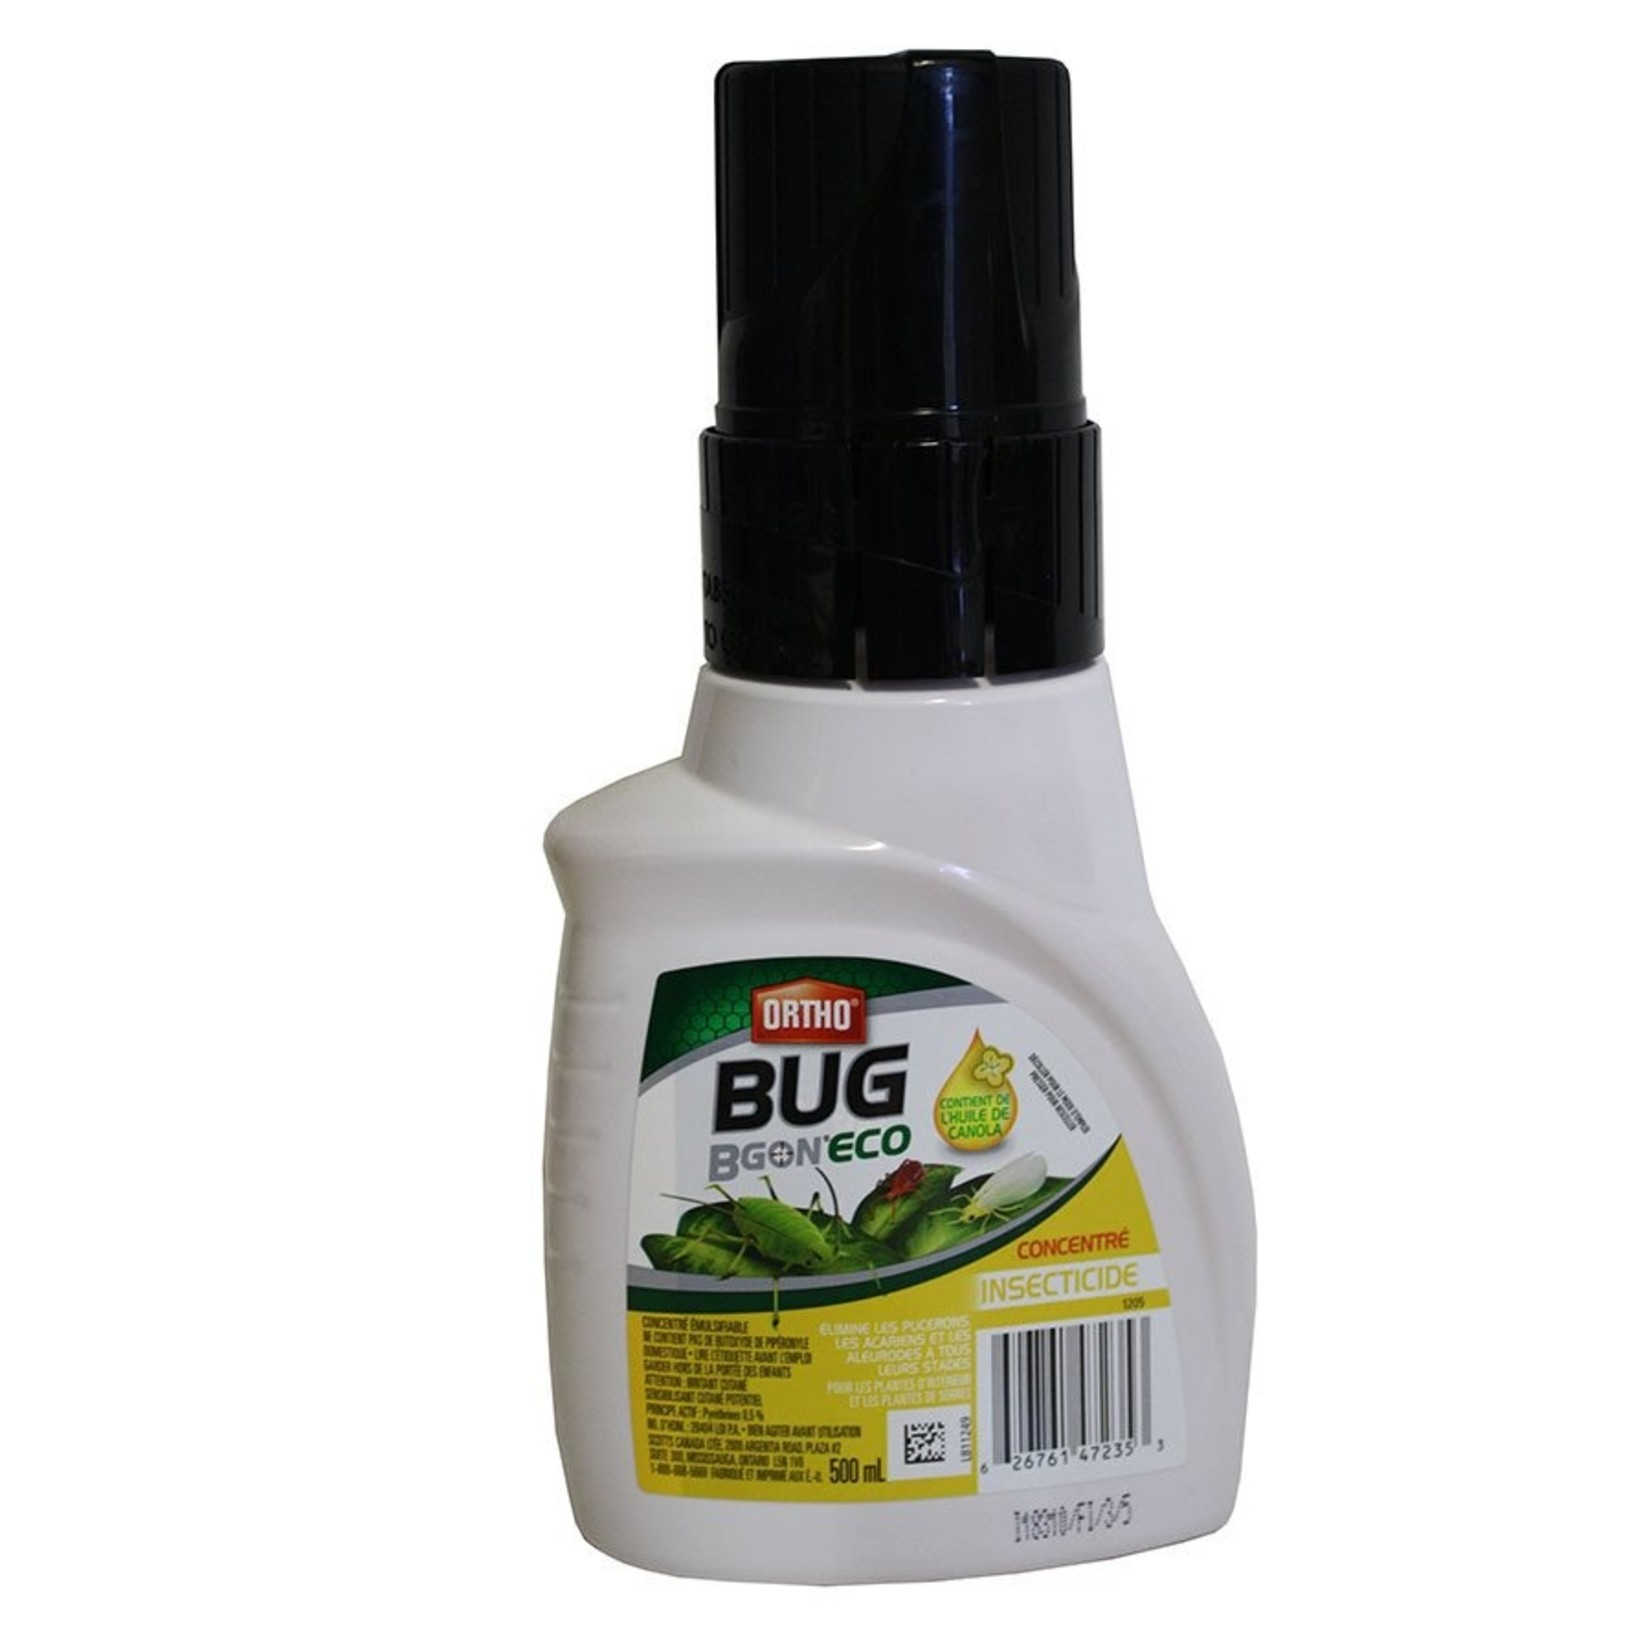 Scotts SCOTTS ECOSENSE BUG B GON CONCETRATE INSECTICIDE 500 ML (1)